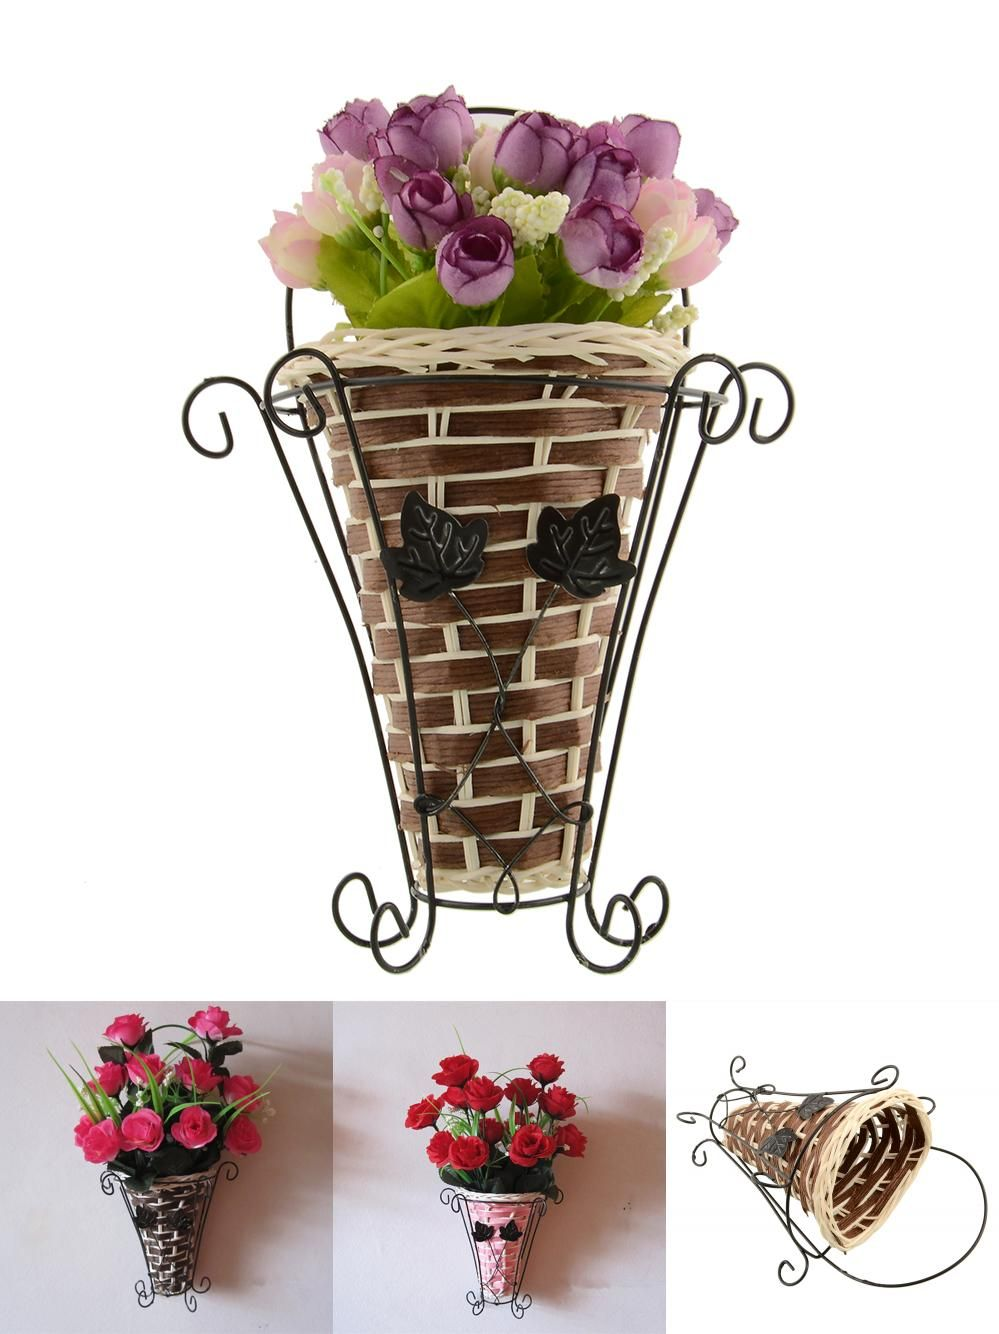 Home decor artificial flowers  Visit to Buy Weave Vine Mural Wall Hanging Artificial Flower Plant